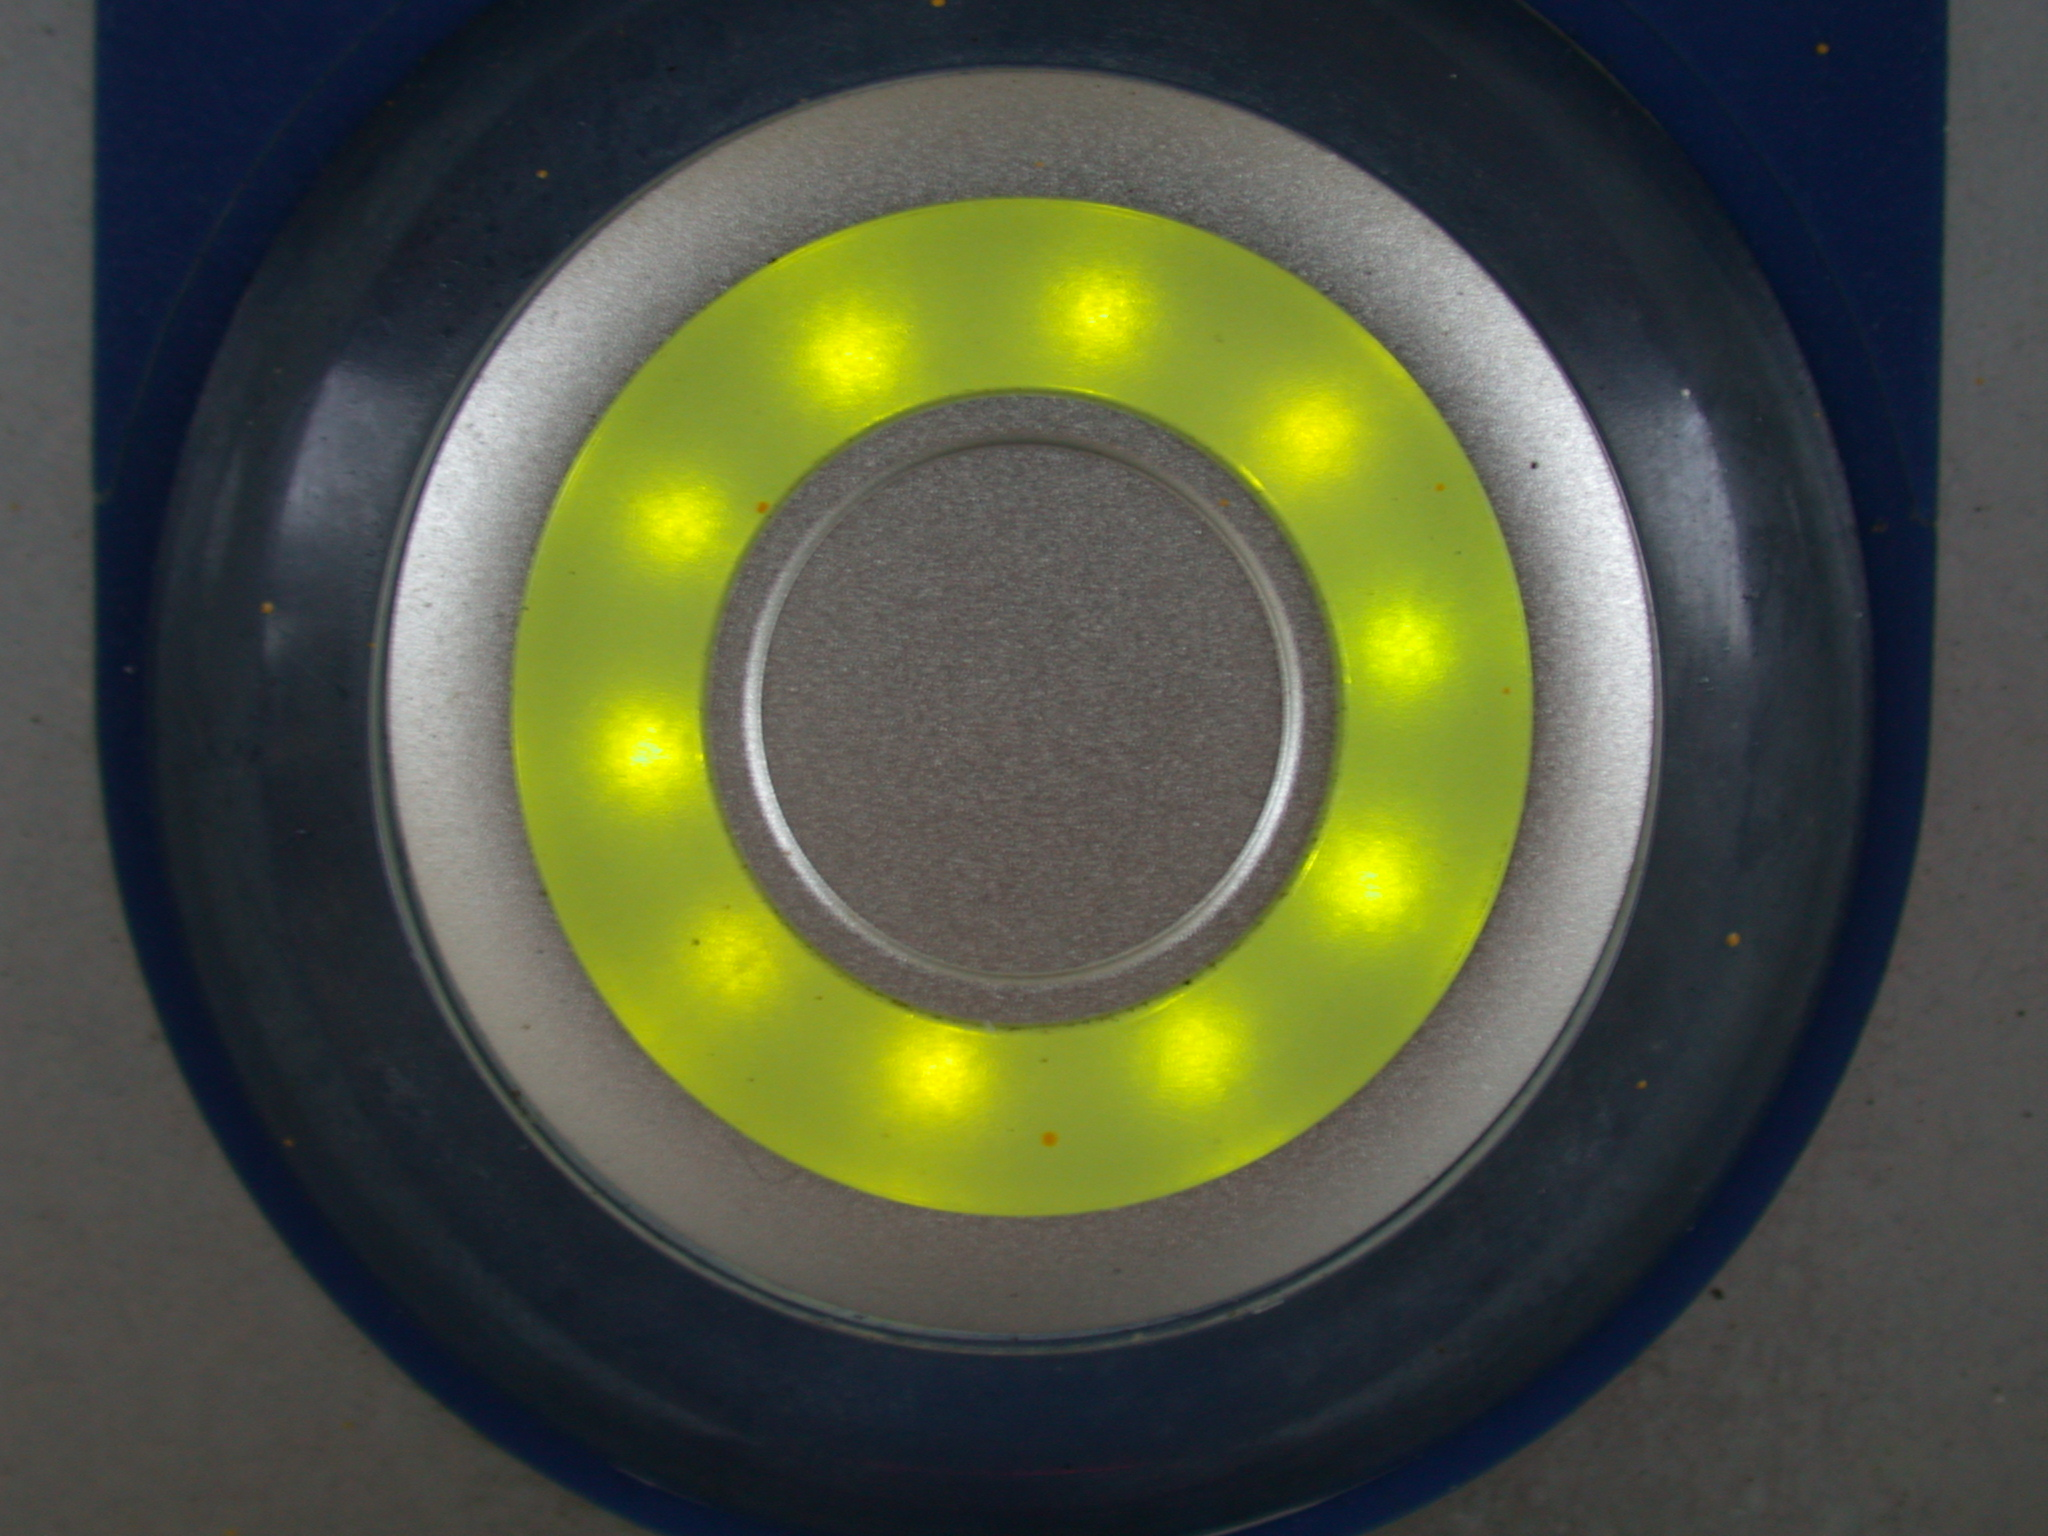 round button yellow push circle plastic light led royalty free